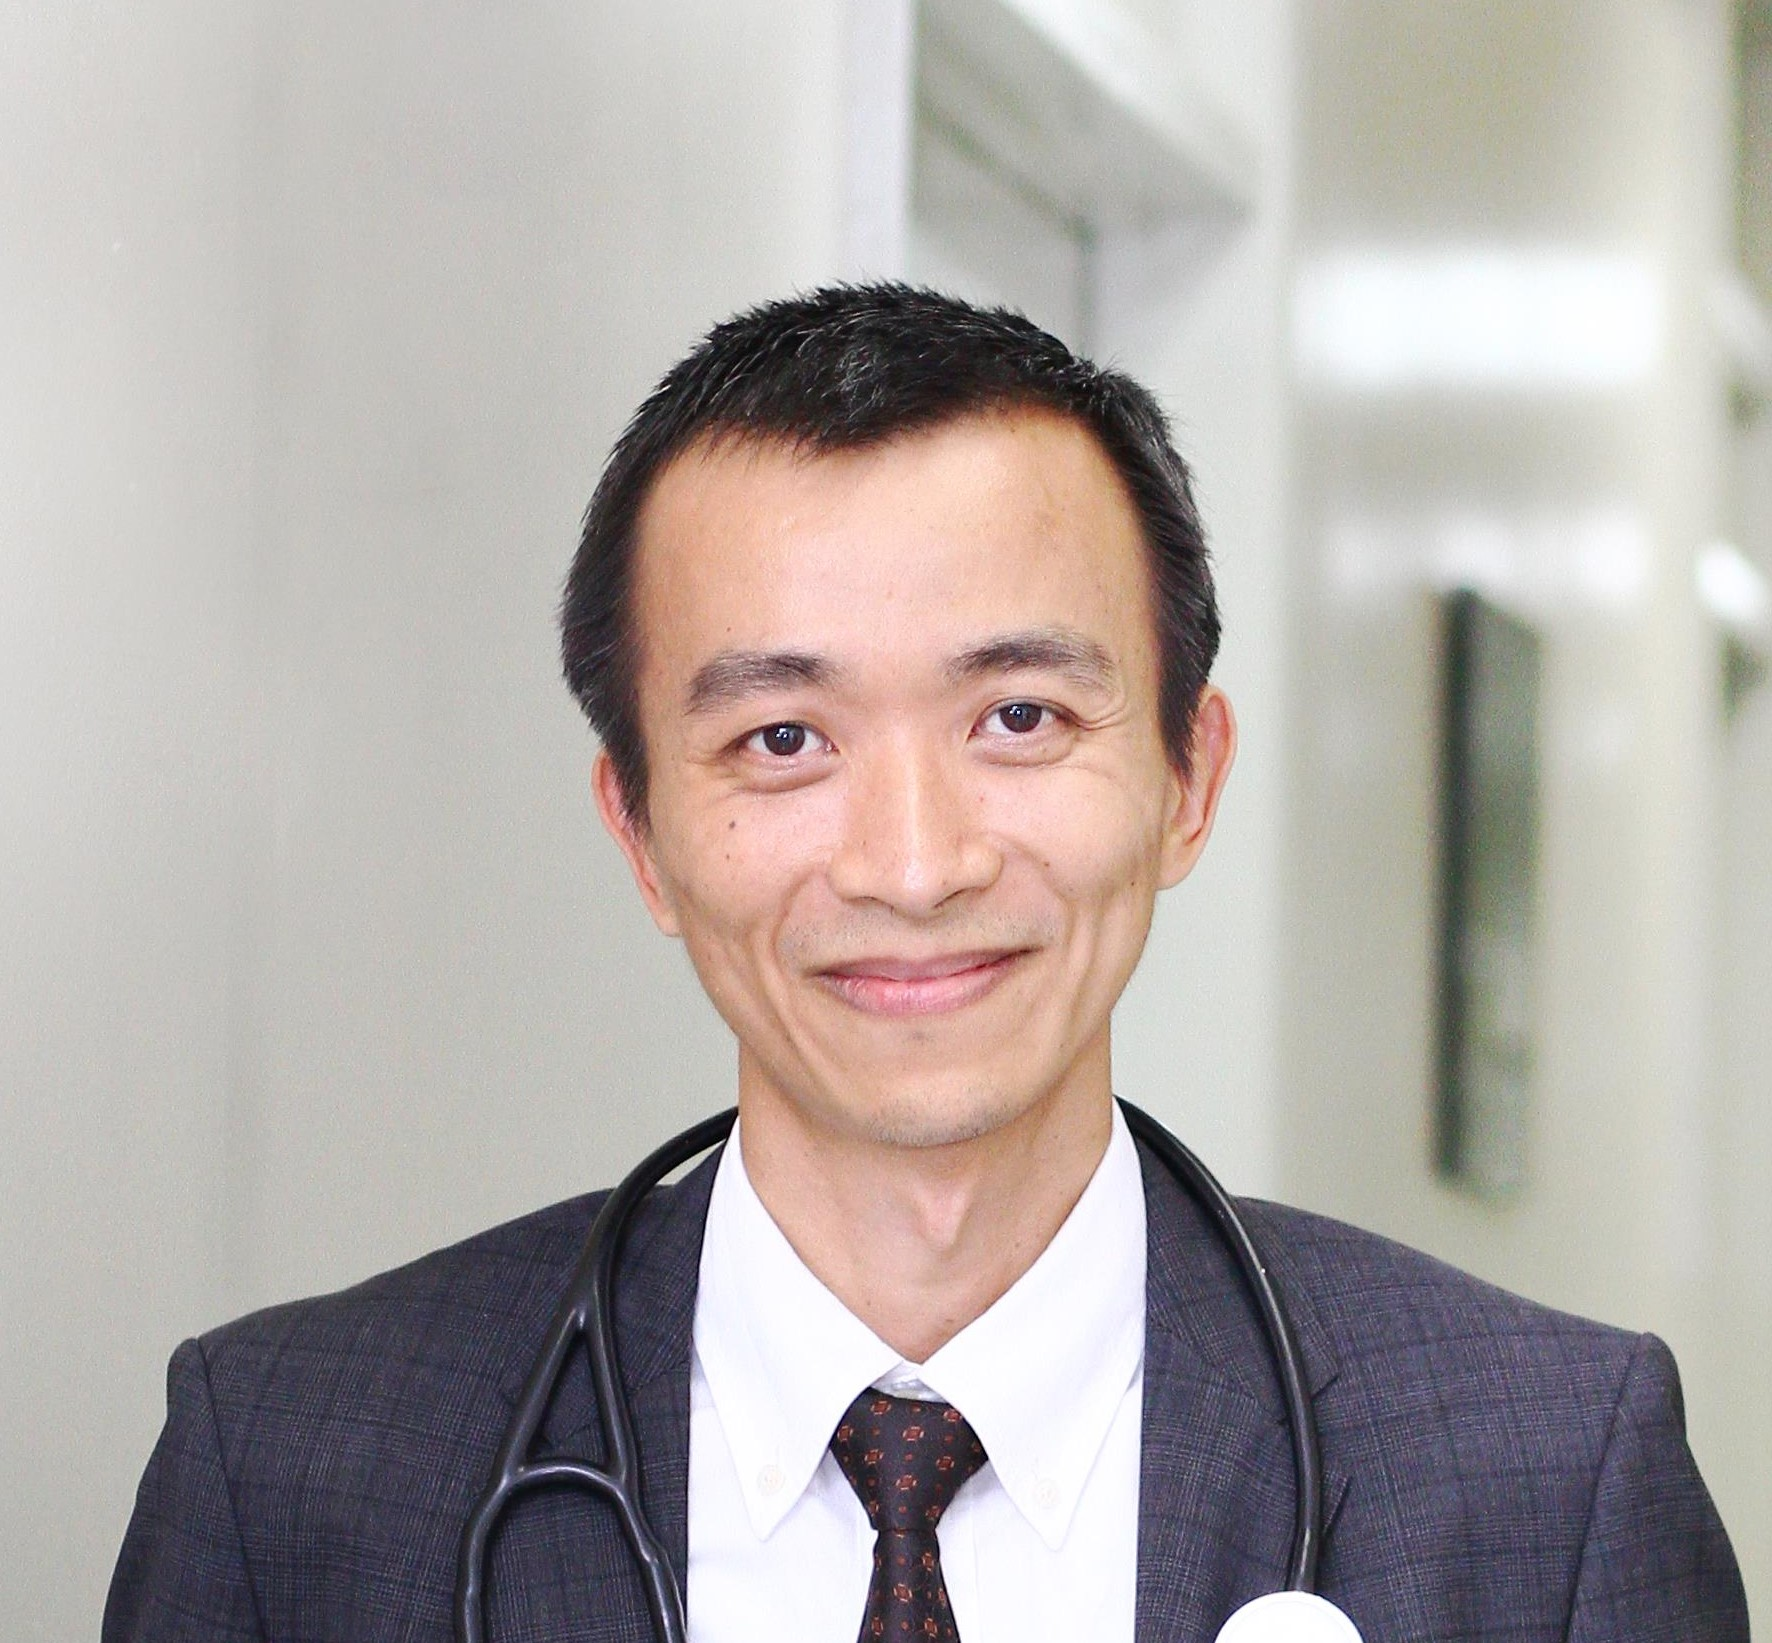 Dr. Gwo Fuang Ho